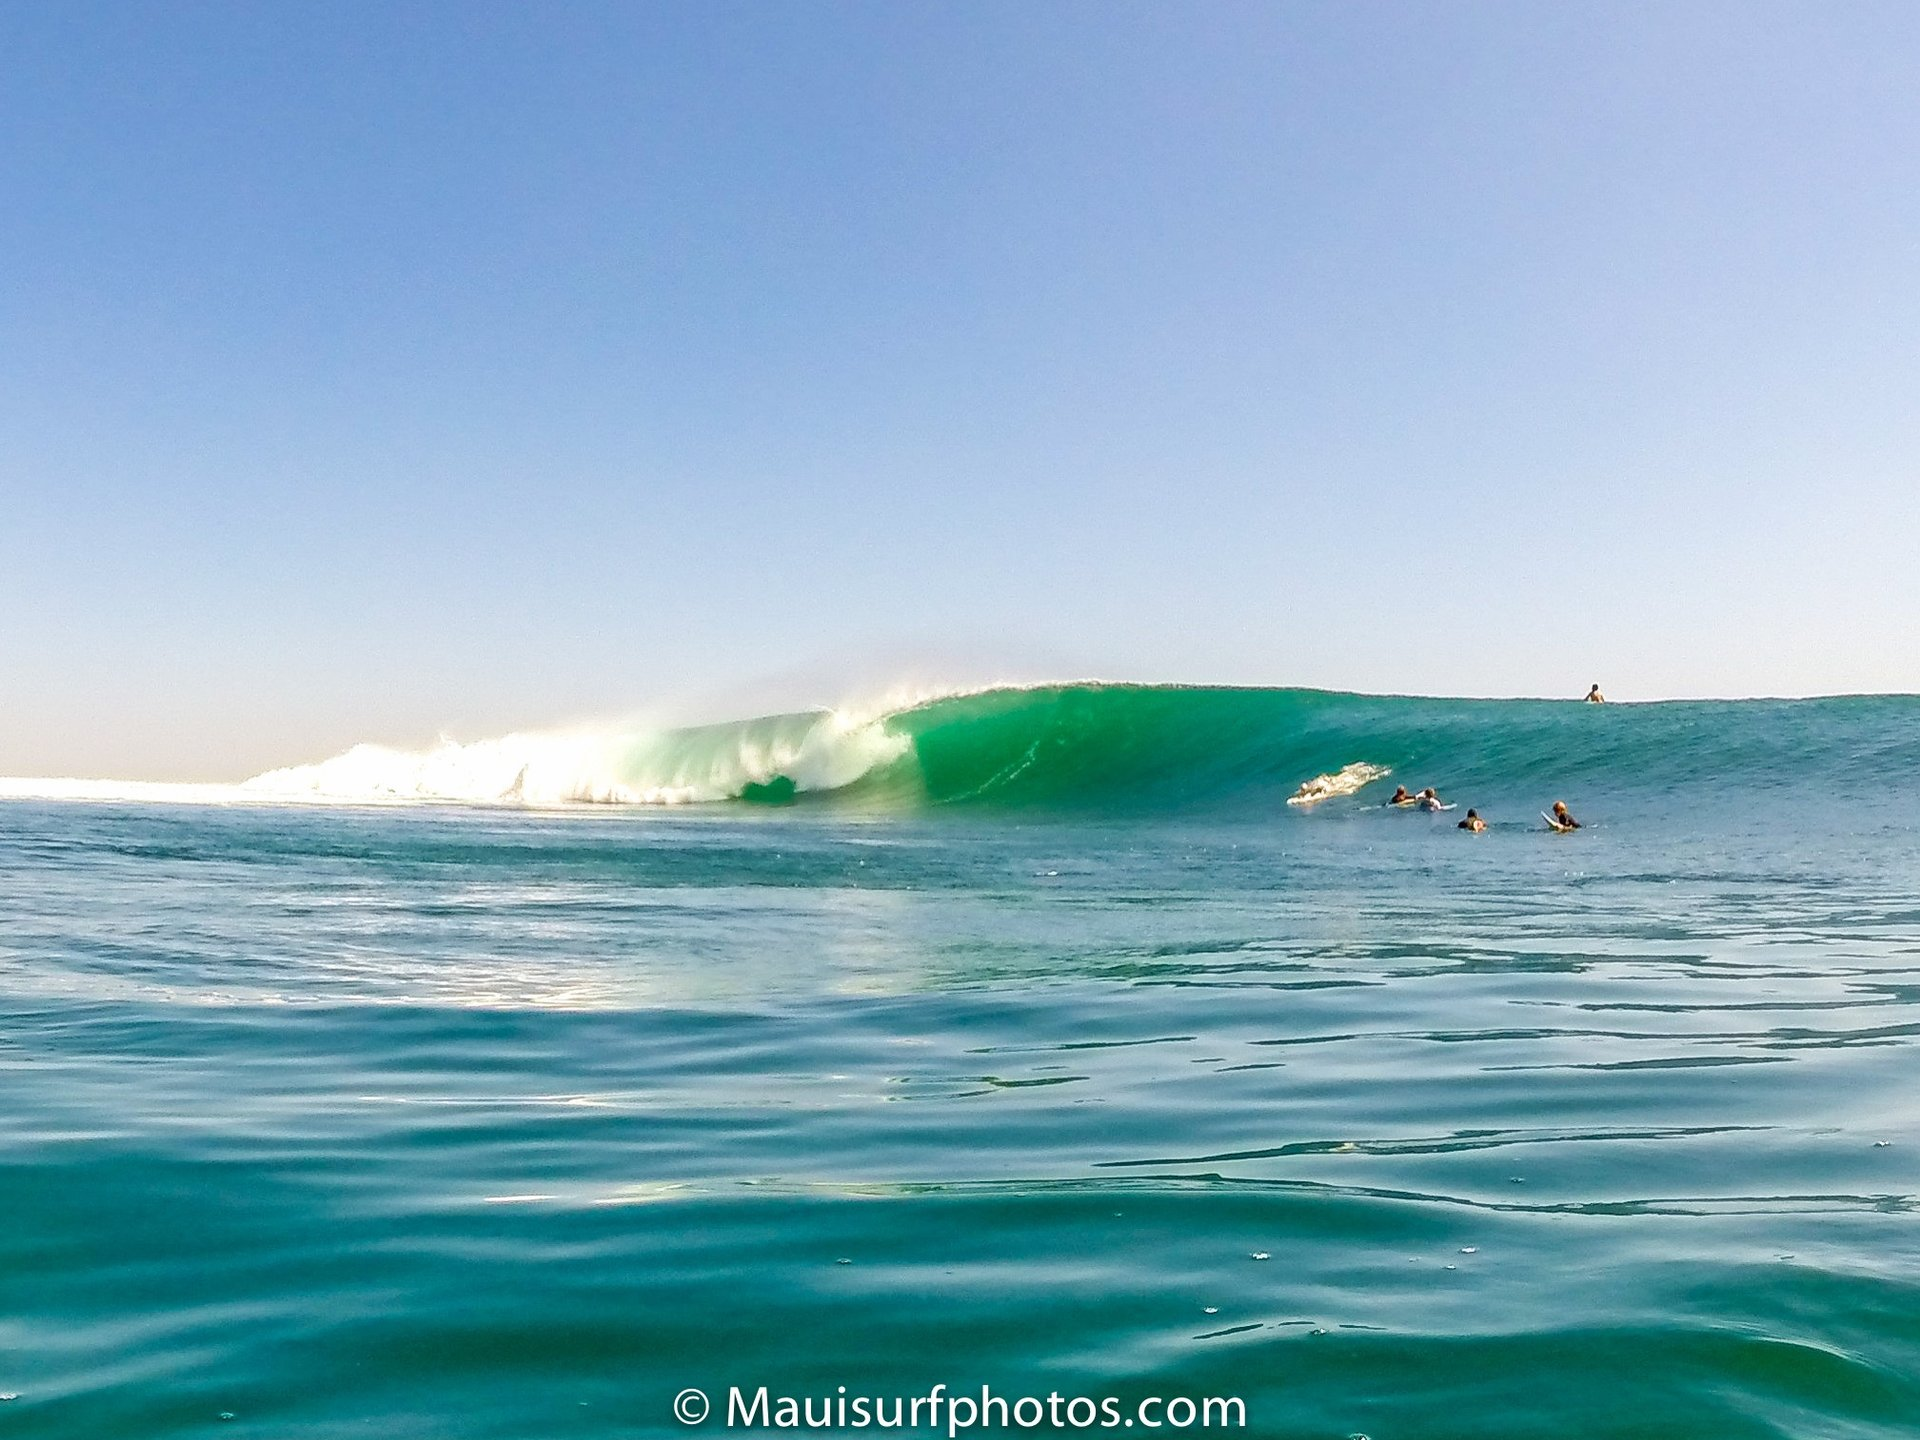 Maui Surf Photos's photo of G-Land